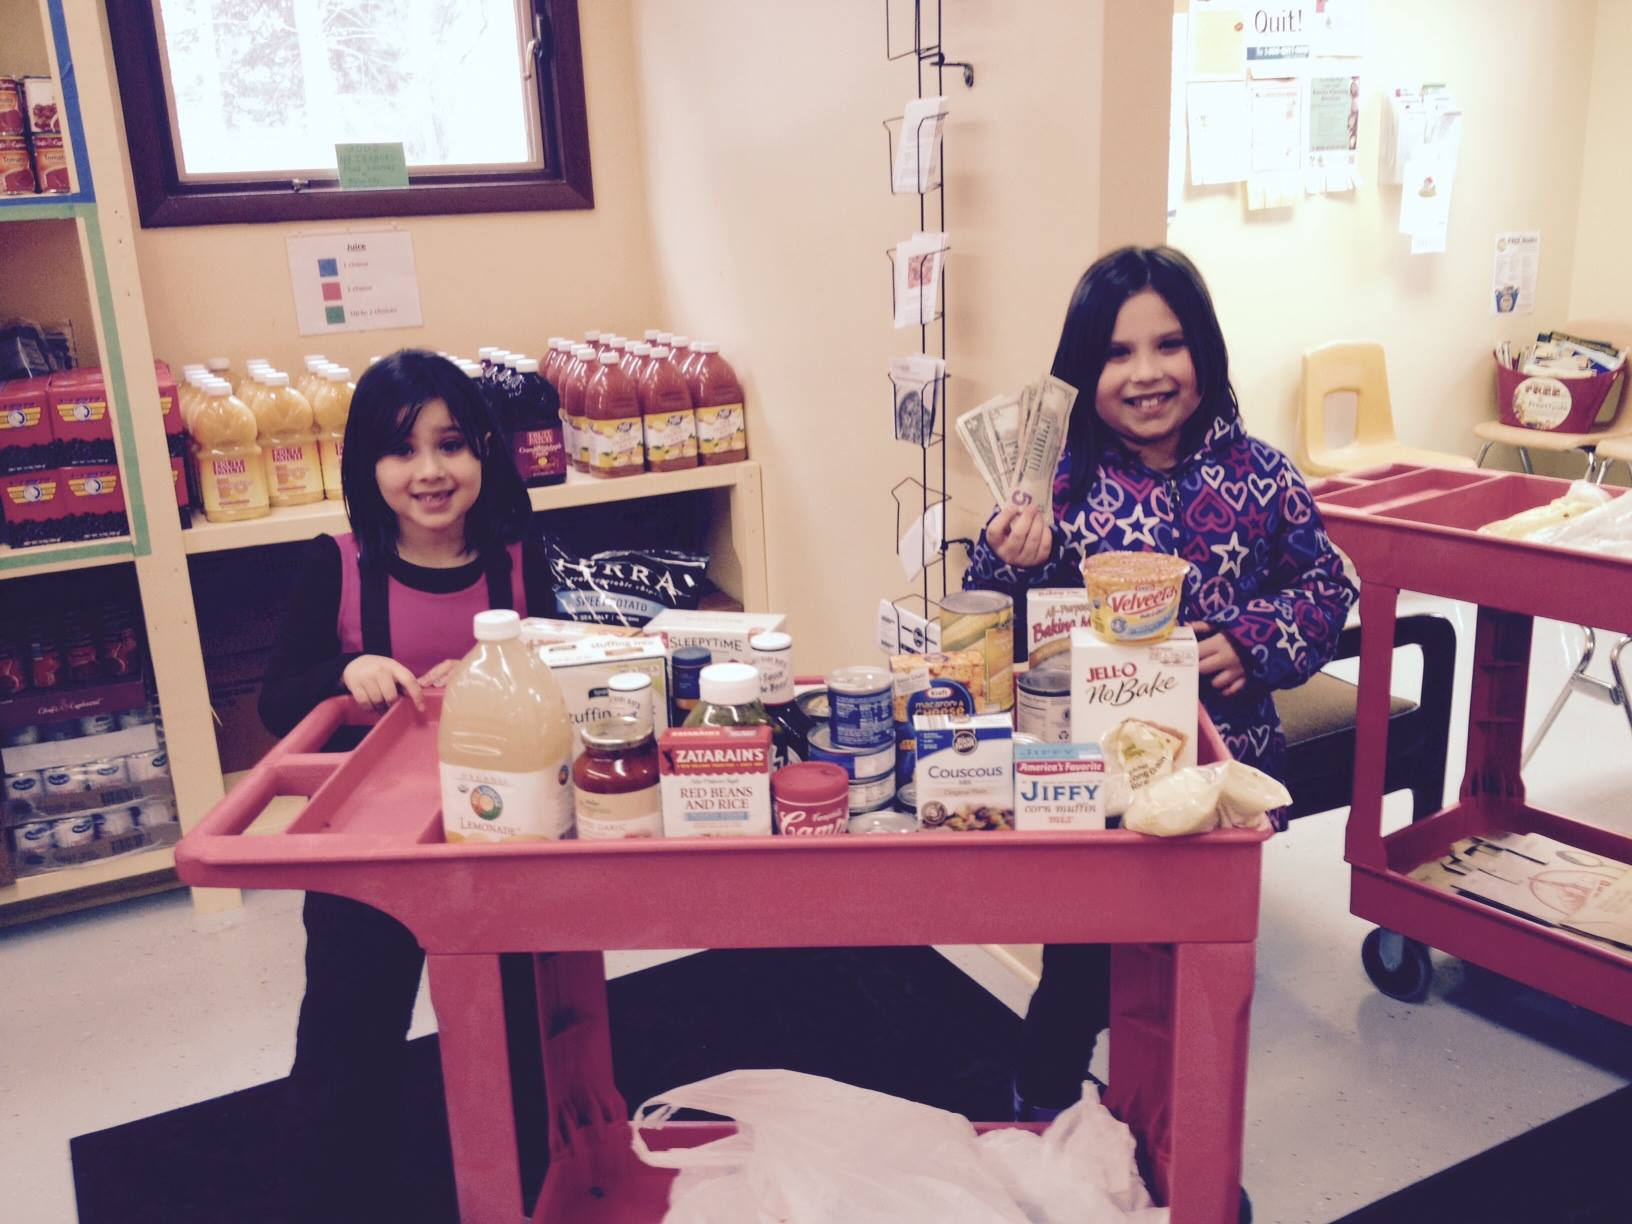 Two girls posing with their donations